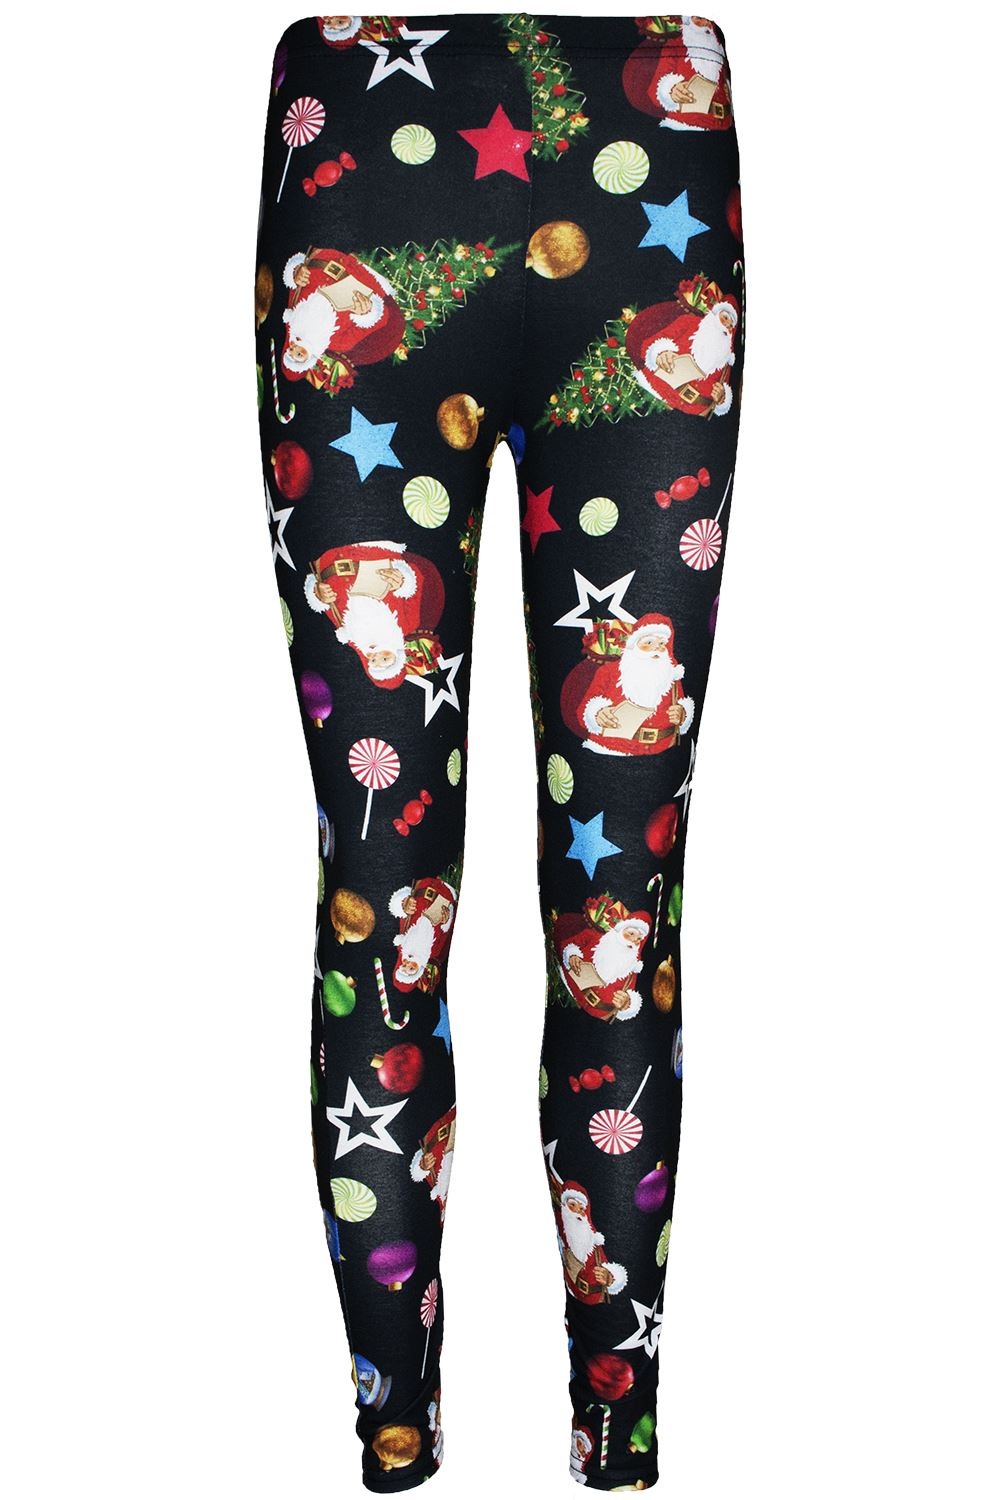 7728df1dbc2 Womens Ladies Legging Red Nose Rudolph Reindeer Santa Wall Christmas ...